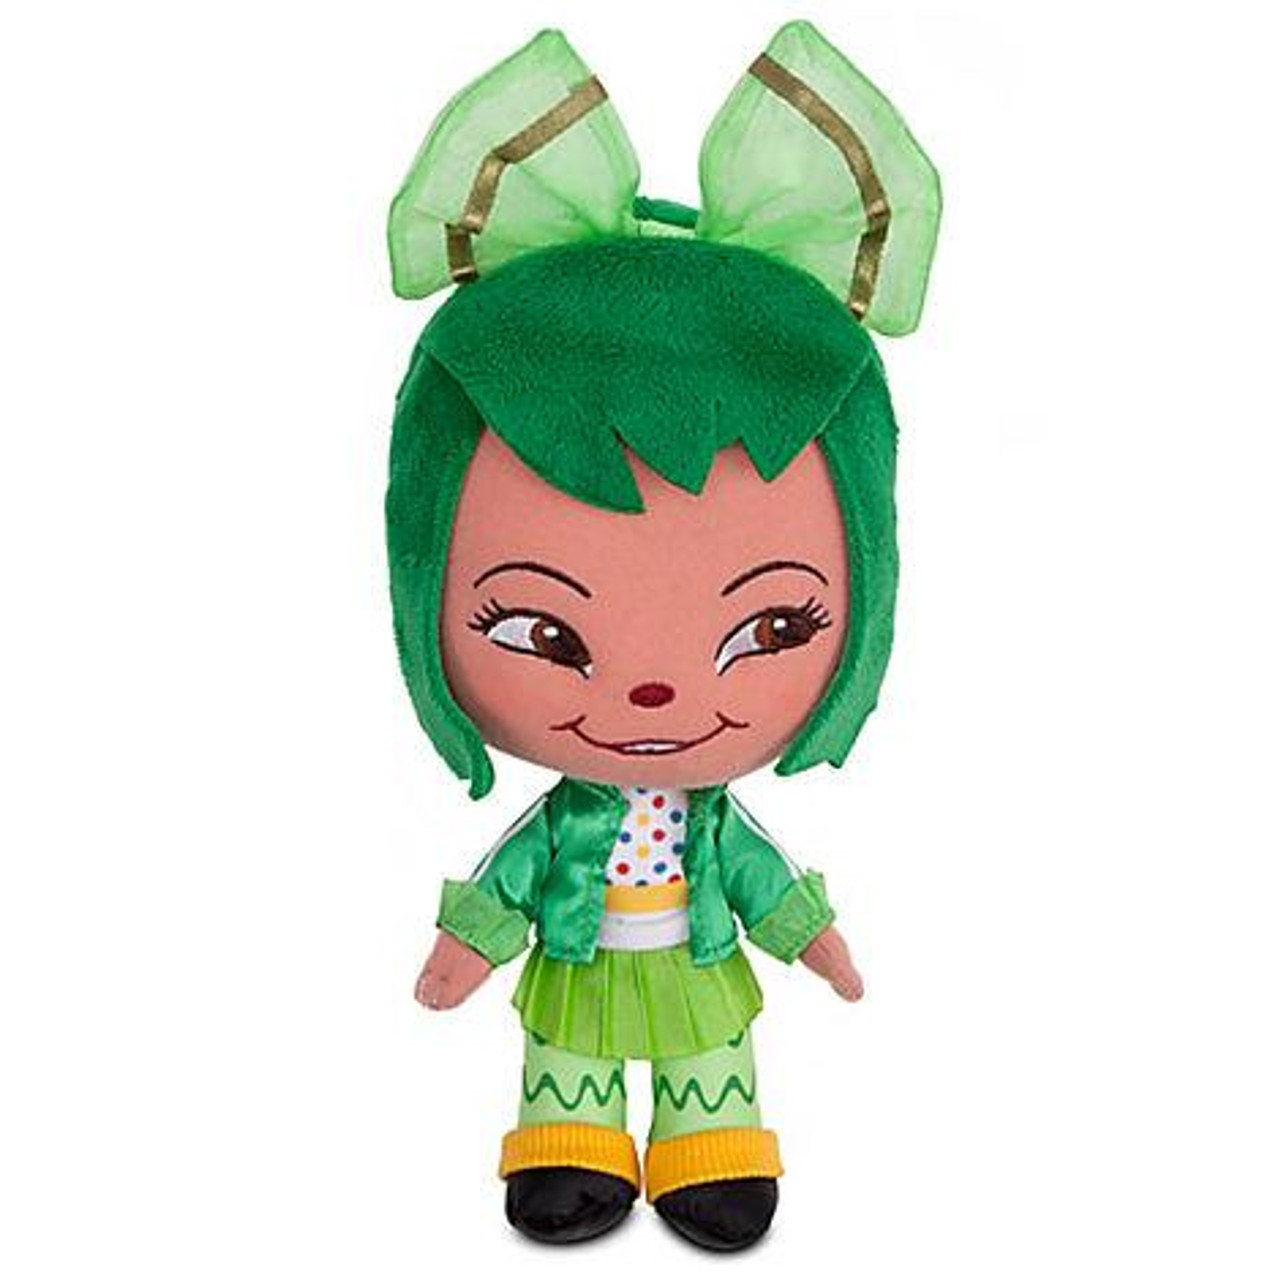 Disney Wreck-It Ralph Scented Minty Zaki Exclusive 9-Inch Bean Bag Plush